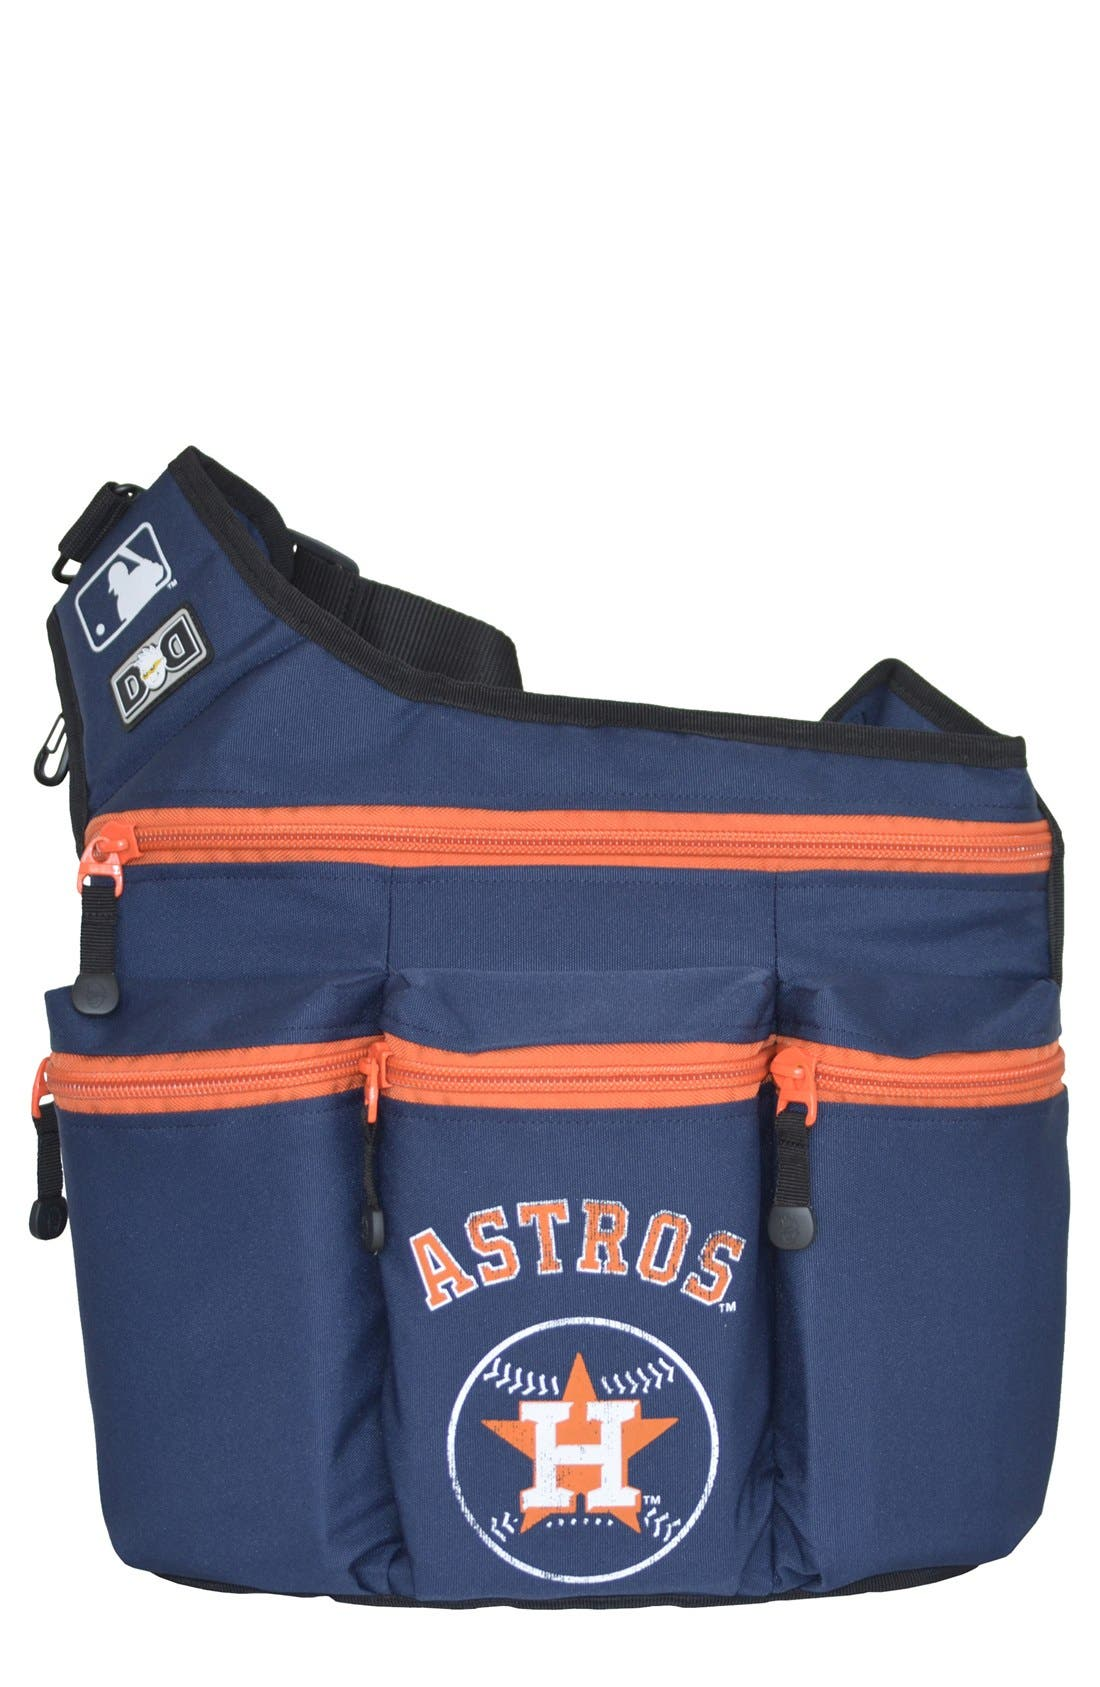 Alternate Image 1 Selected - Diaper Dude 'Houston Astros' Messenger Diaper Bag